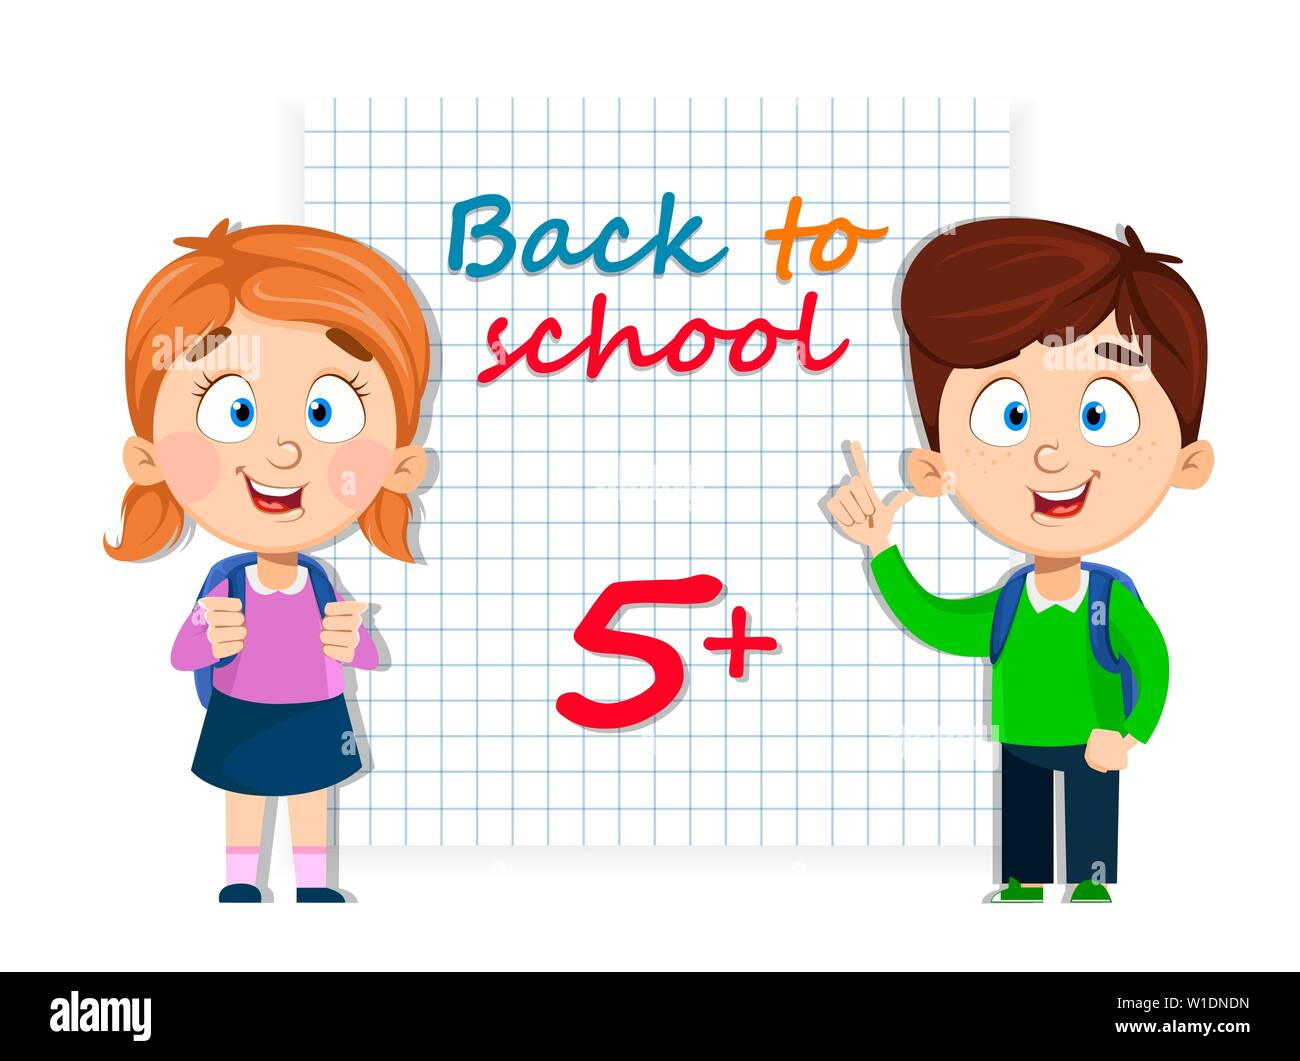 Back To School Cute Girl And Boy With Backpacks Funny Cartoon Character Vector Illustration Stock Vector Image Art Alamy